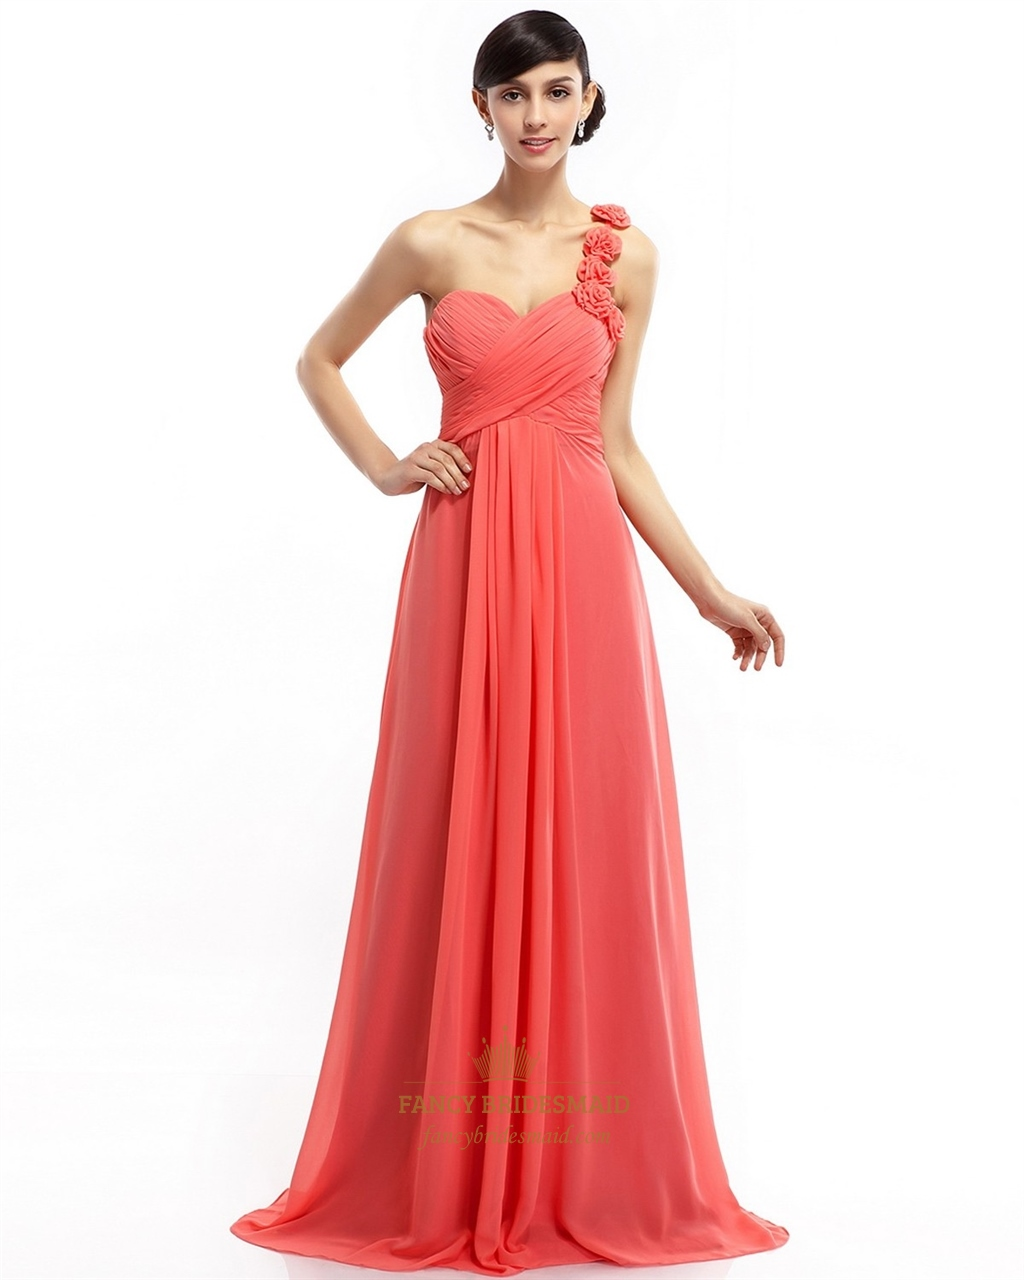 Coral empire one shoulder chiffon bridesmaid dress with ruffle coral empire one shoulder chiffon bridesmaid dress with ruffle flower ombrellifo Gallery